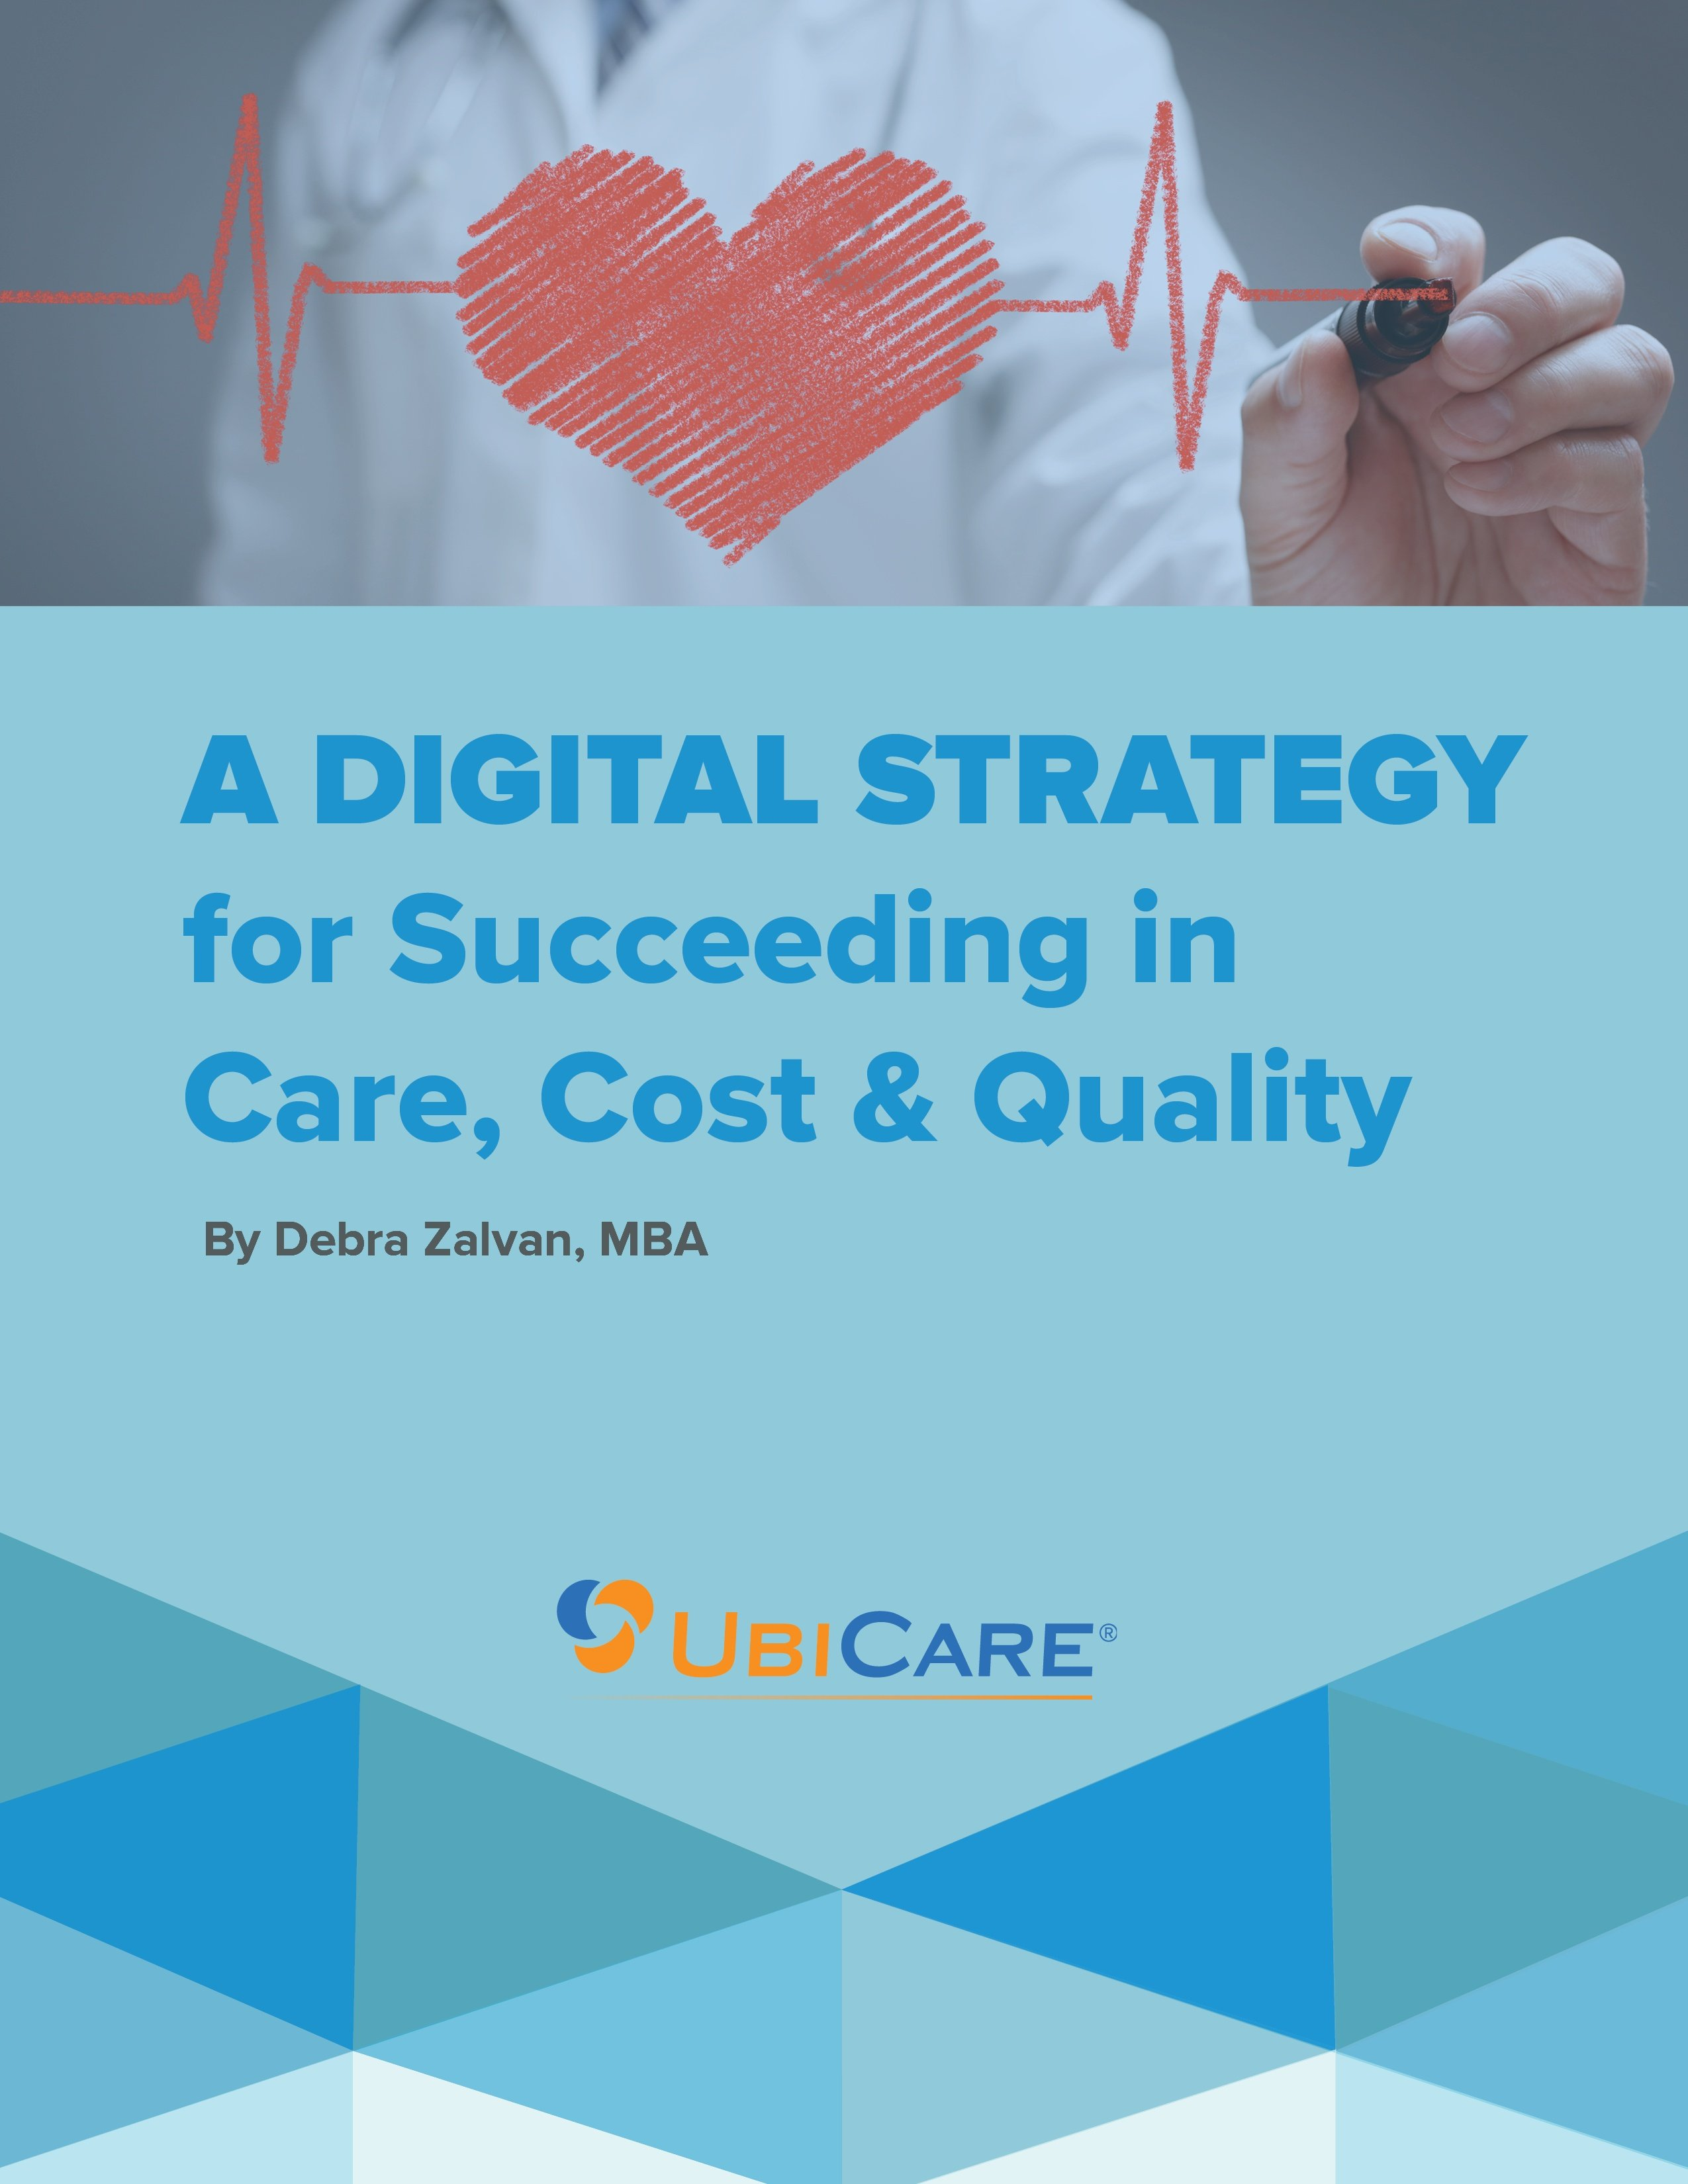 Digital_Strategy_Succeeding_Care_Cost_Qualityv12-18-cover.jpg